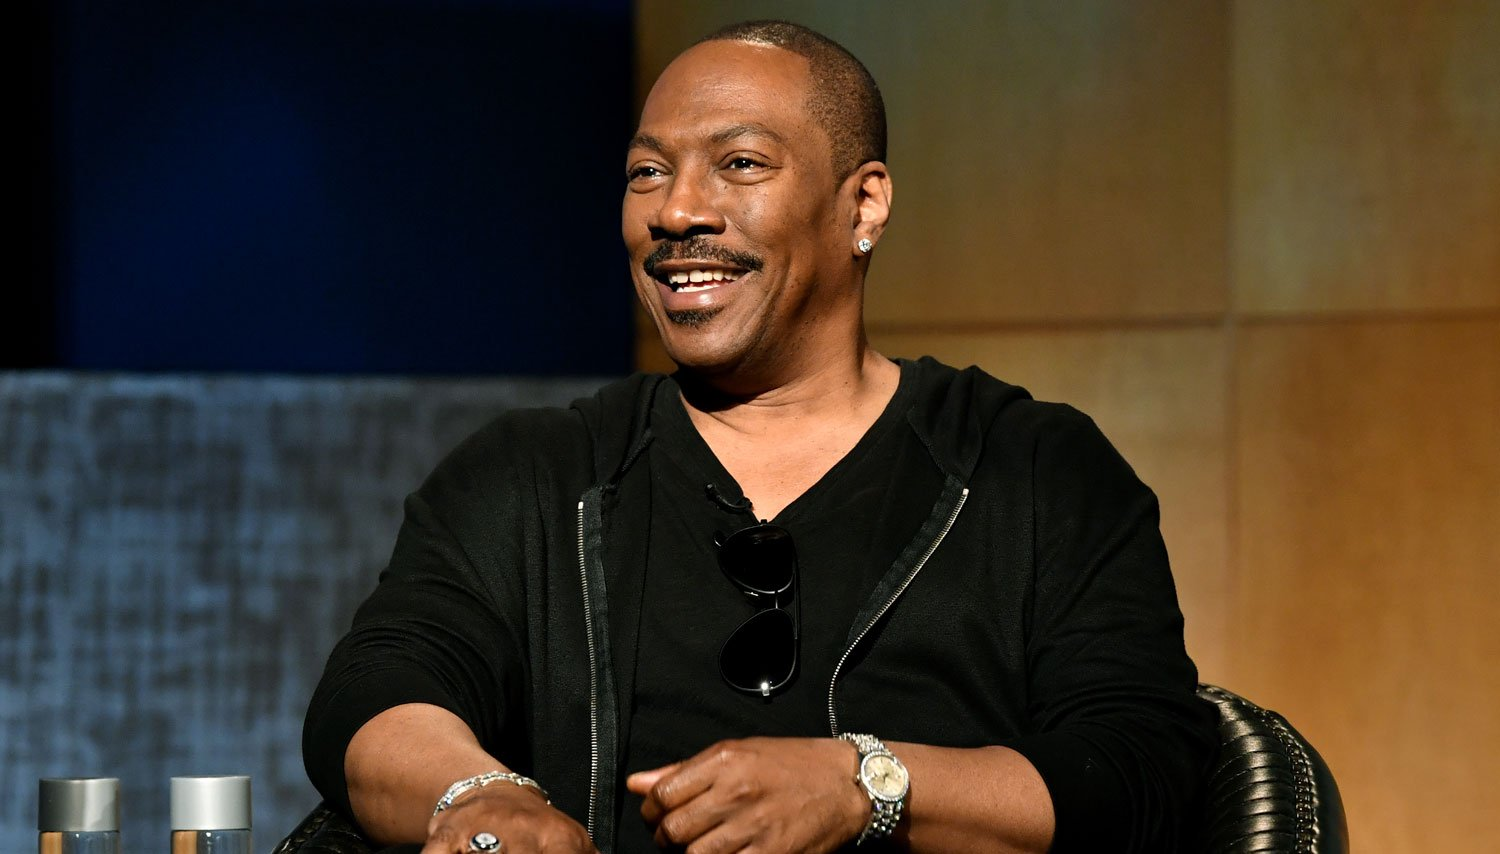 Netflix Might Pay Eddie Murphy $70 Million for Stand-Up Comedy Specials